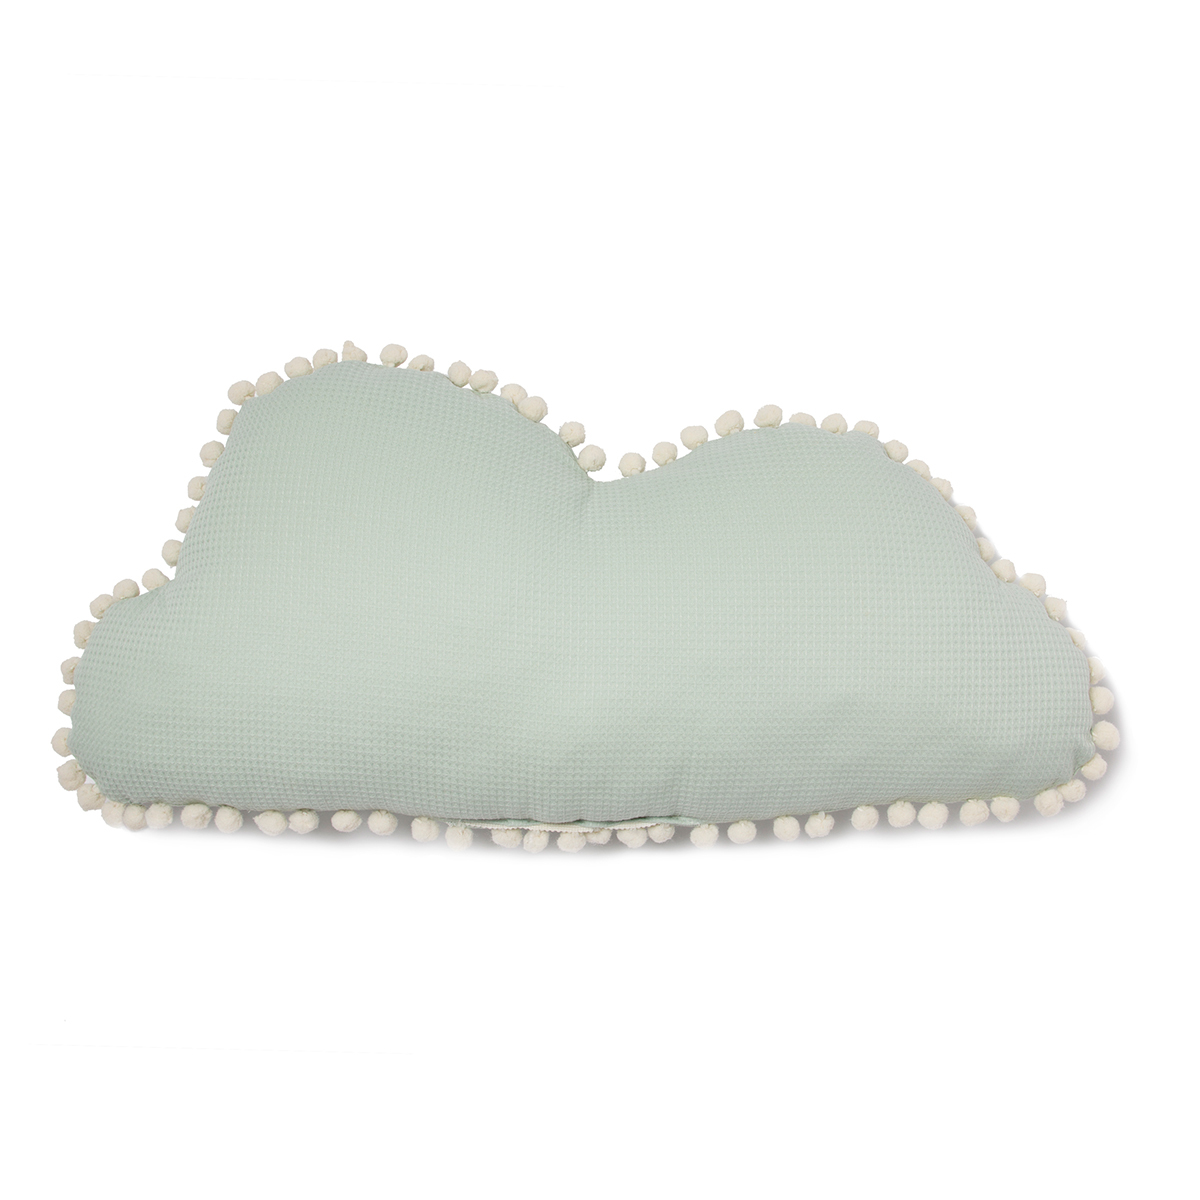 Coussin Coussin Nuage Marshmallow - Aqua Coussin Nuage Marshmallow - Aqua